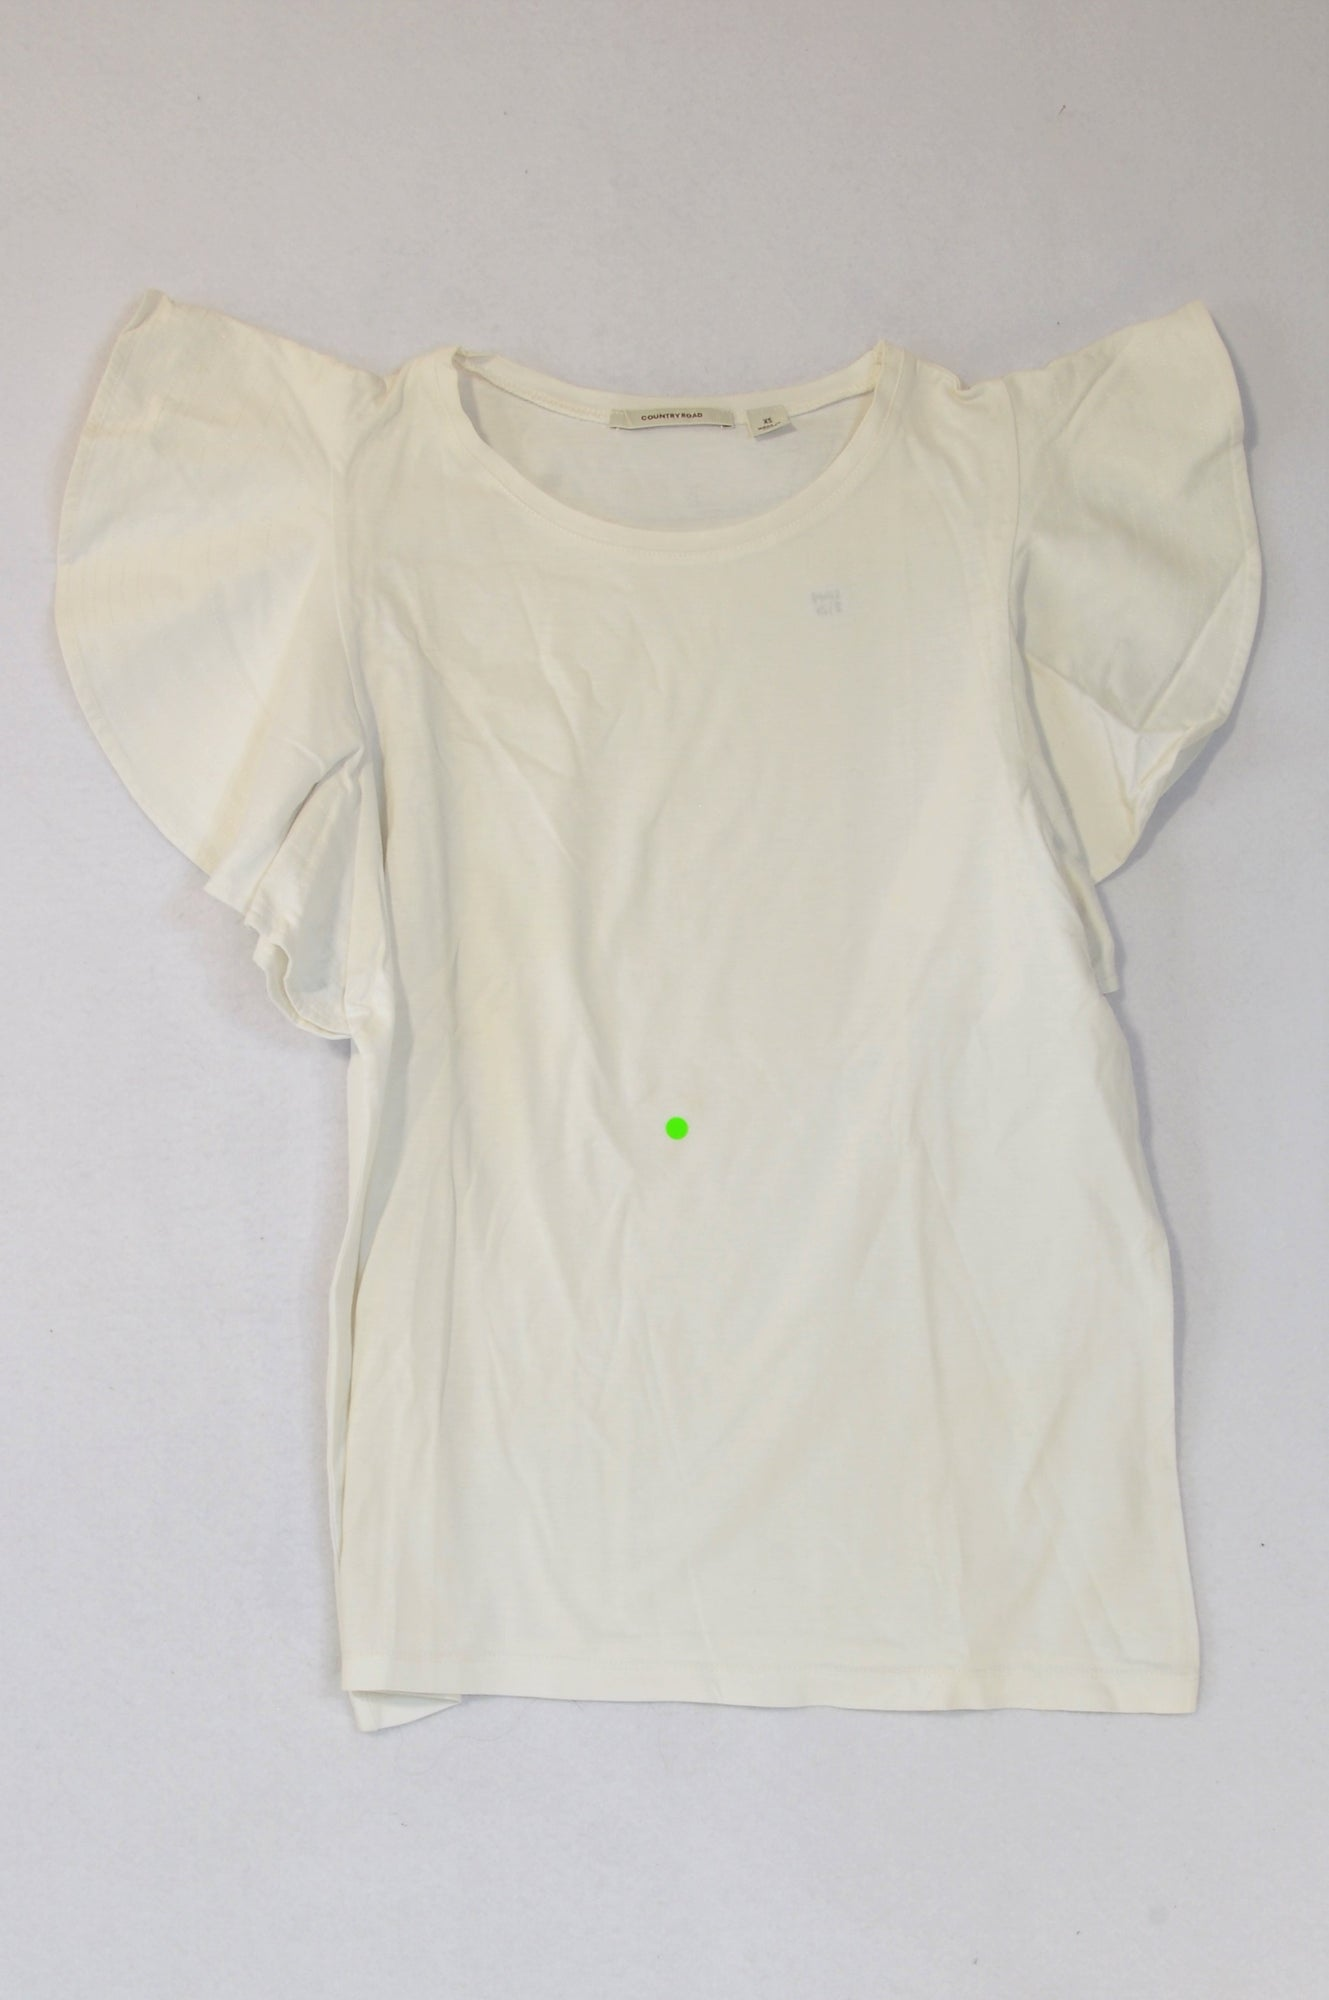 Country Road White Flared Sleeve Top Women Size 8